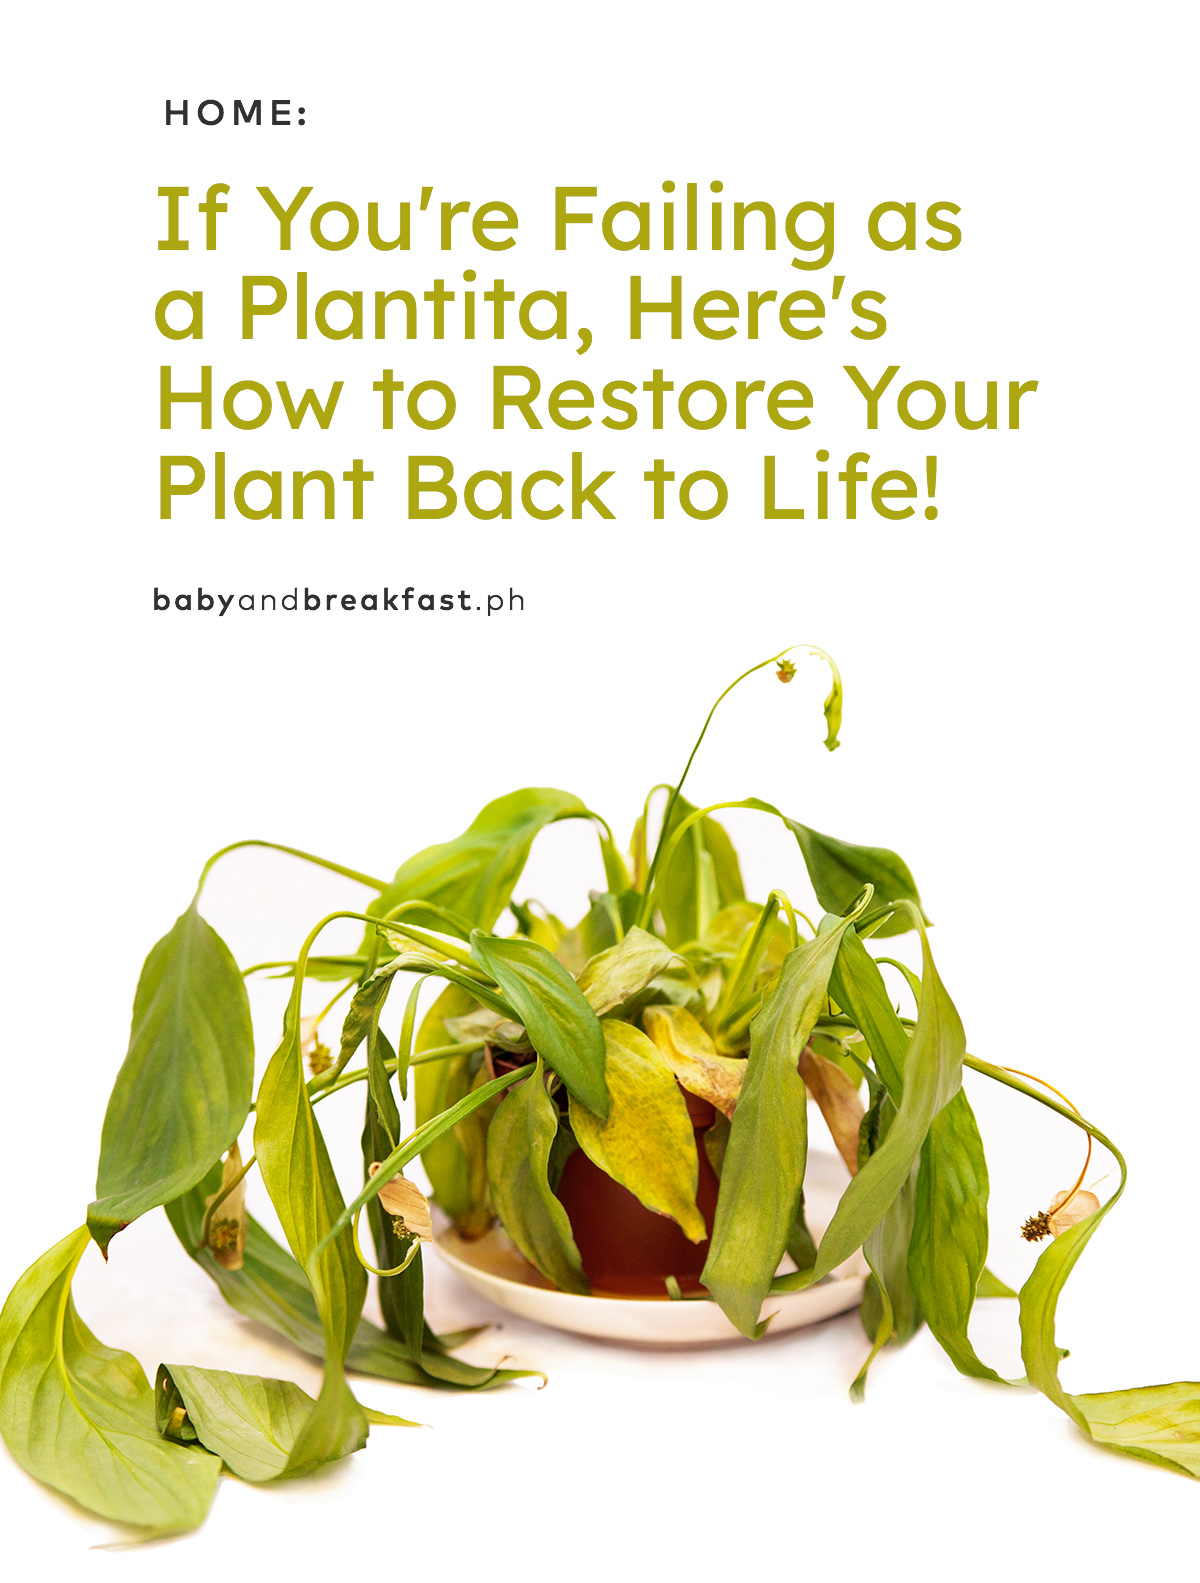 If You're Failing as a Plantita, Here's How to Restore Your Plant Back to Life!